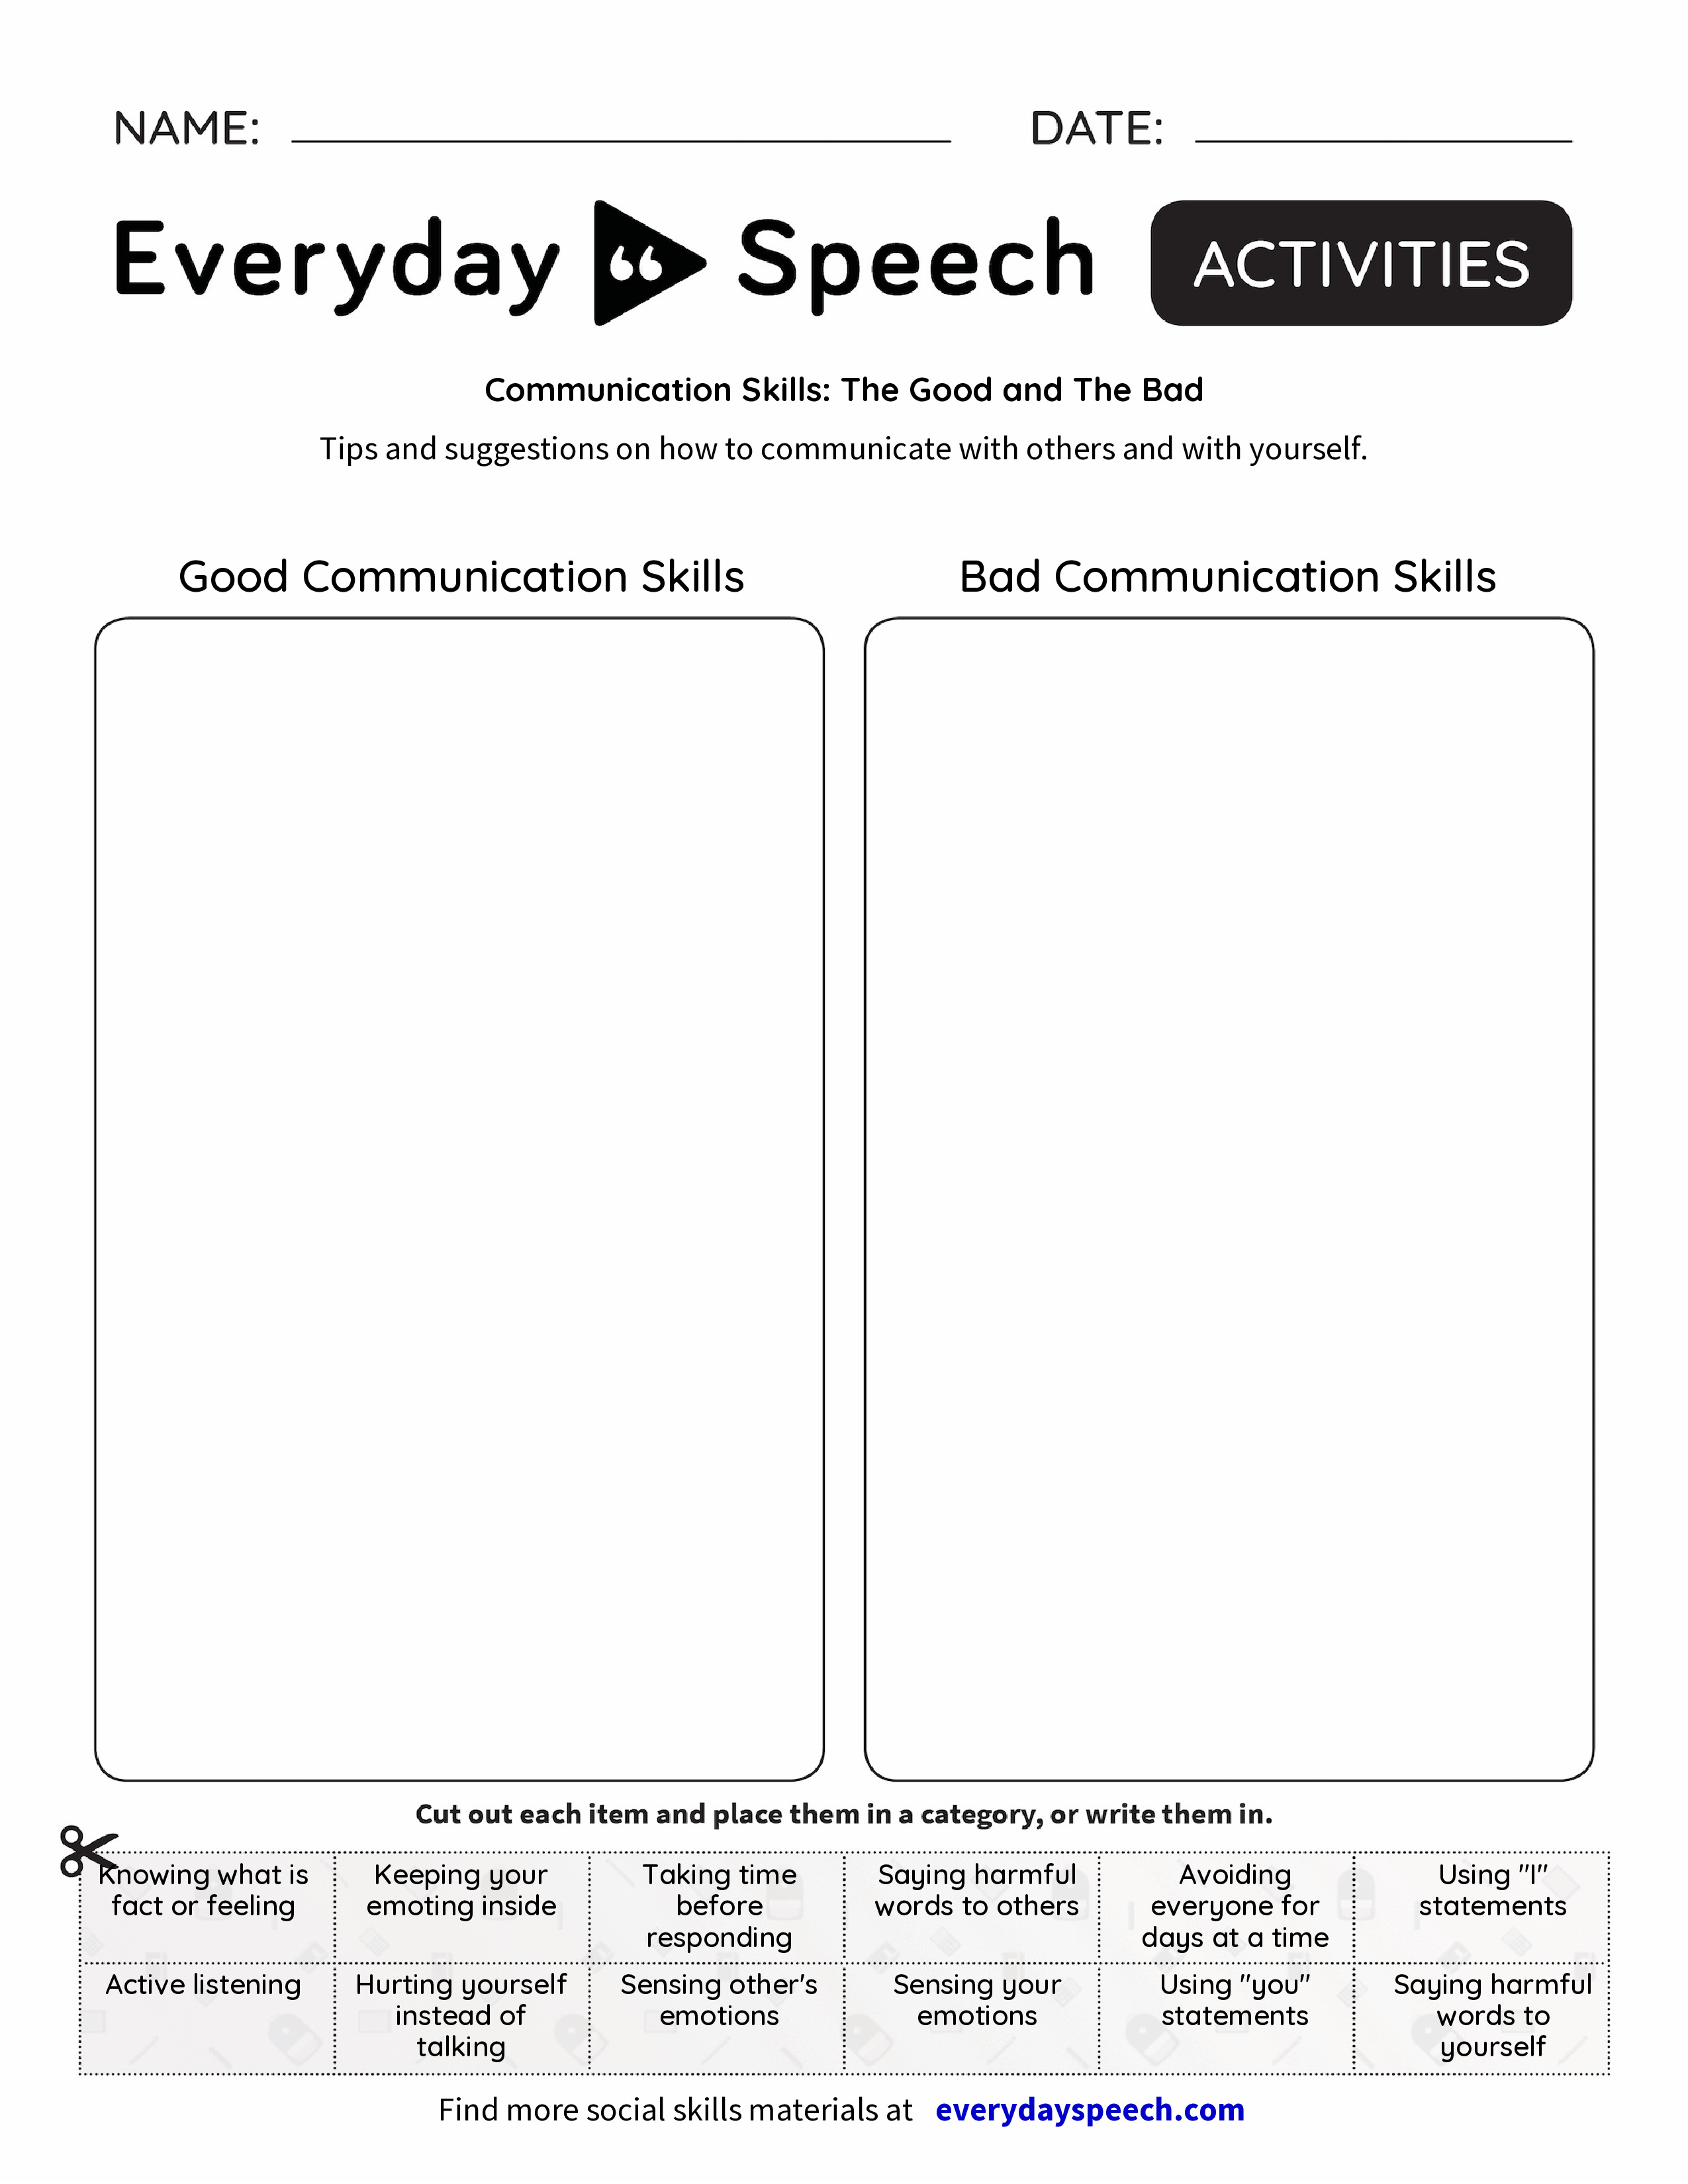 Communication Skills: The Good and The Bad